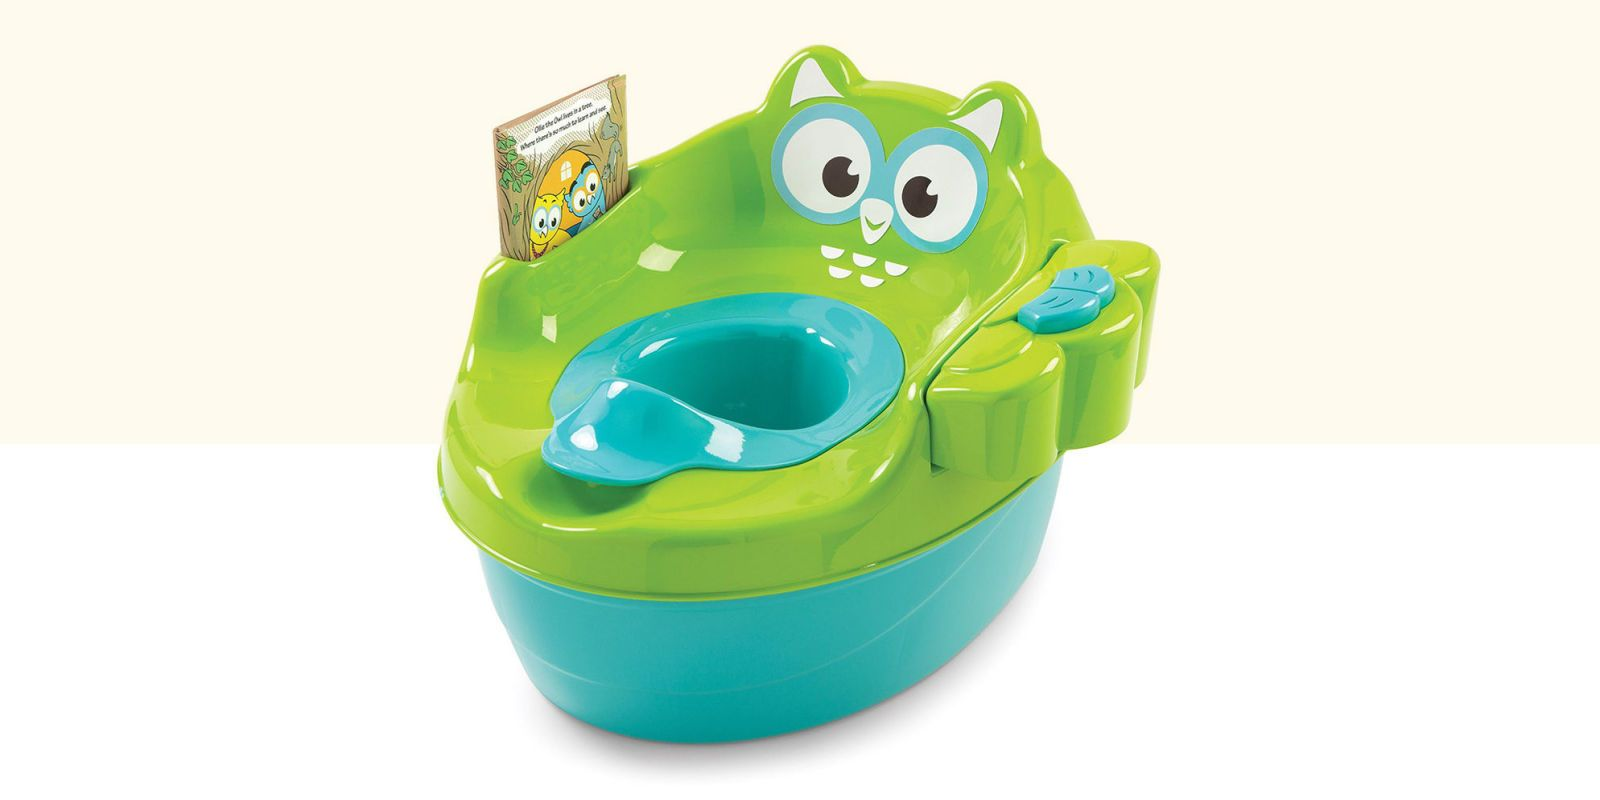 Whether your toddler responds to special effects or you want a seat that blends into your bathroom décor browse our top picks to find the perfect potty ...  sc 1 st  BestProducts.com & 14 Best Potty Chairs for Toddlers in 2018 - Potty Training Chairs ...